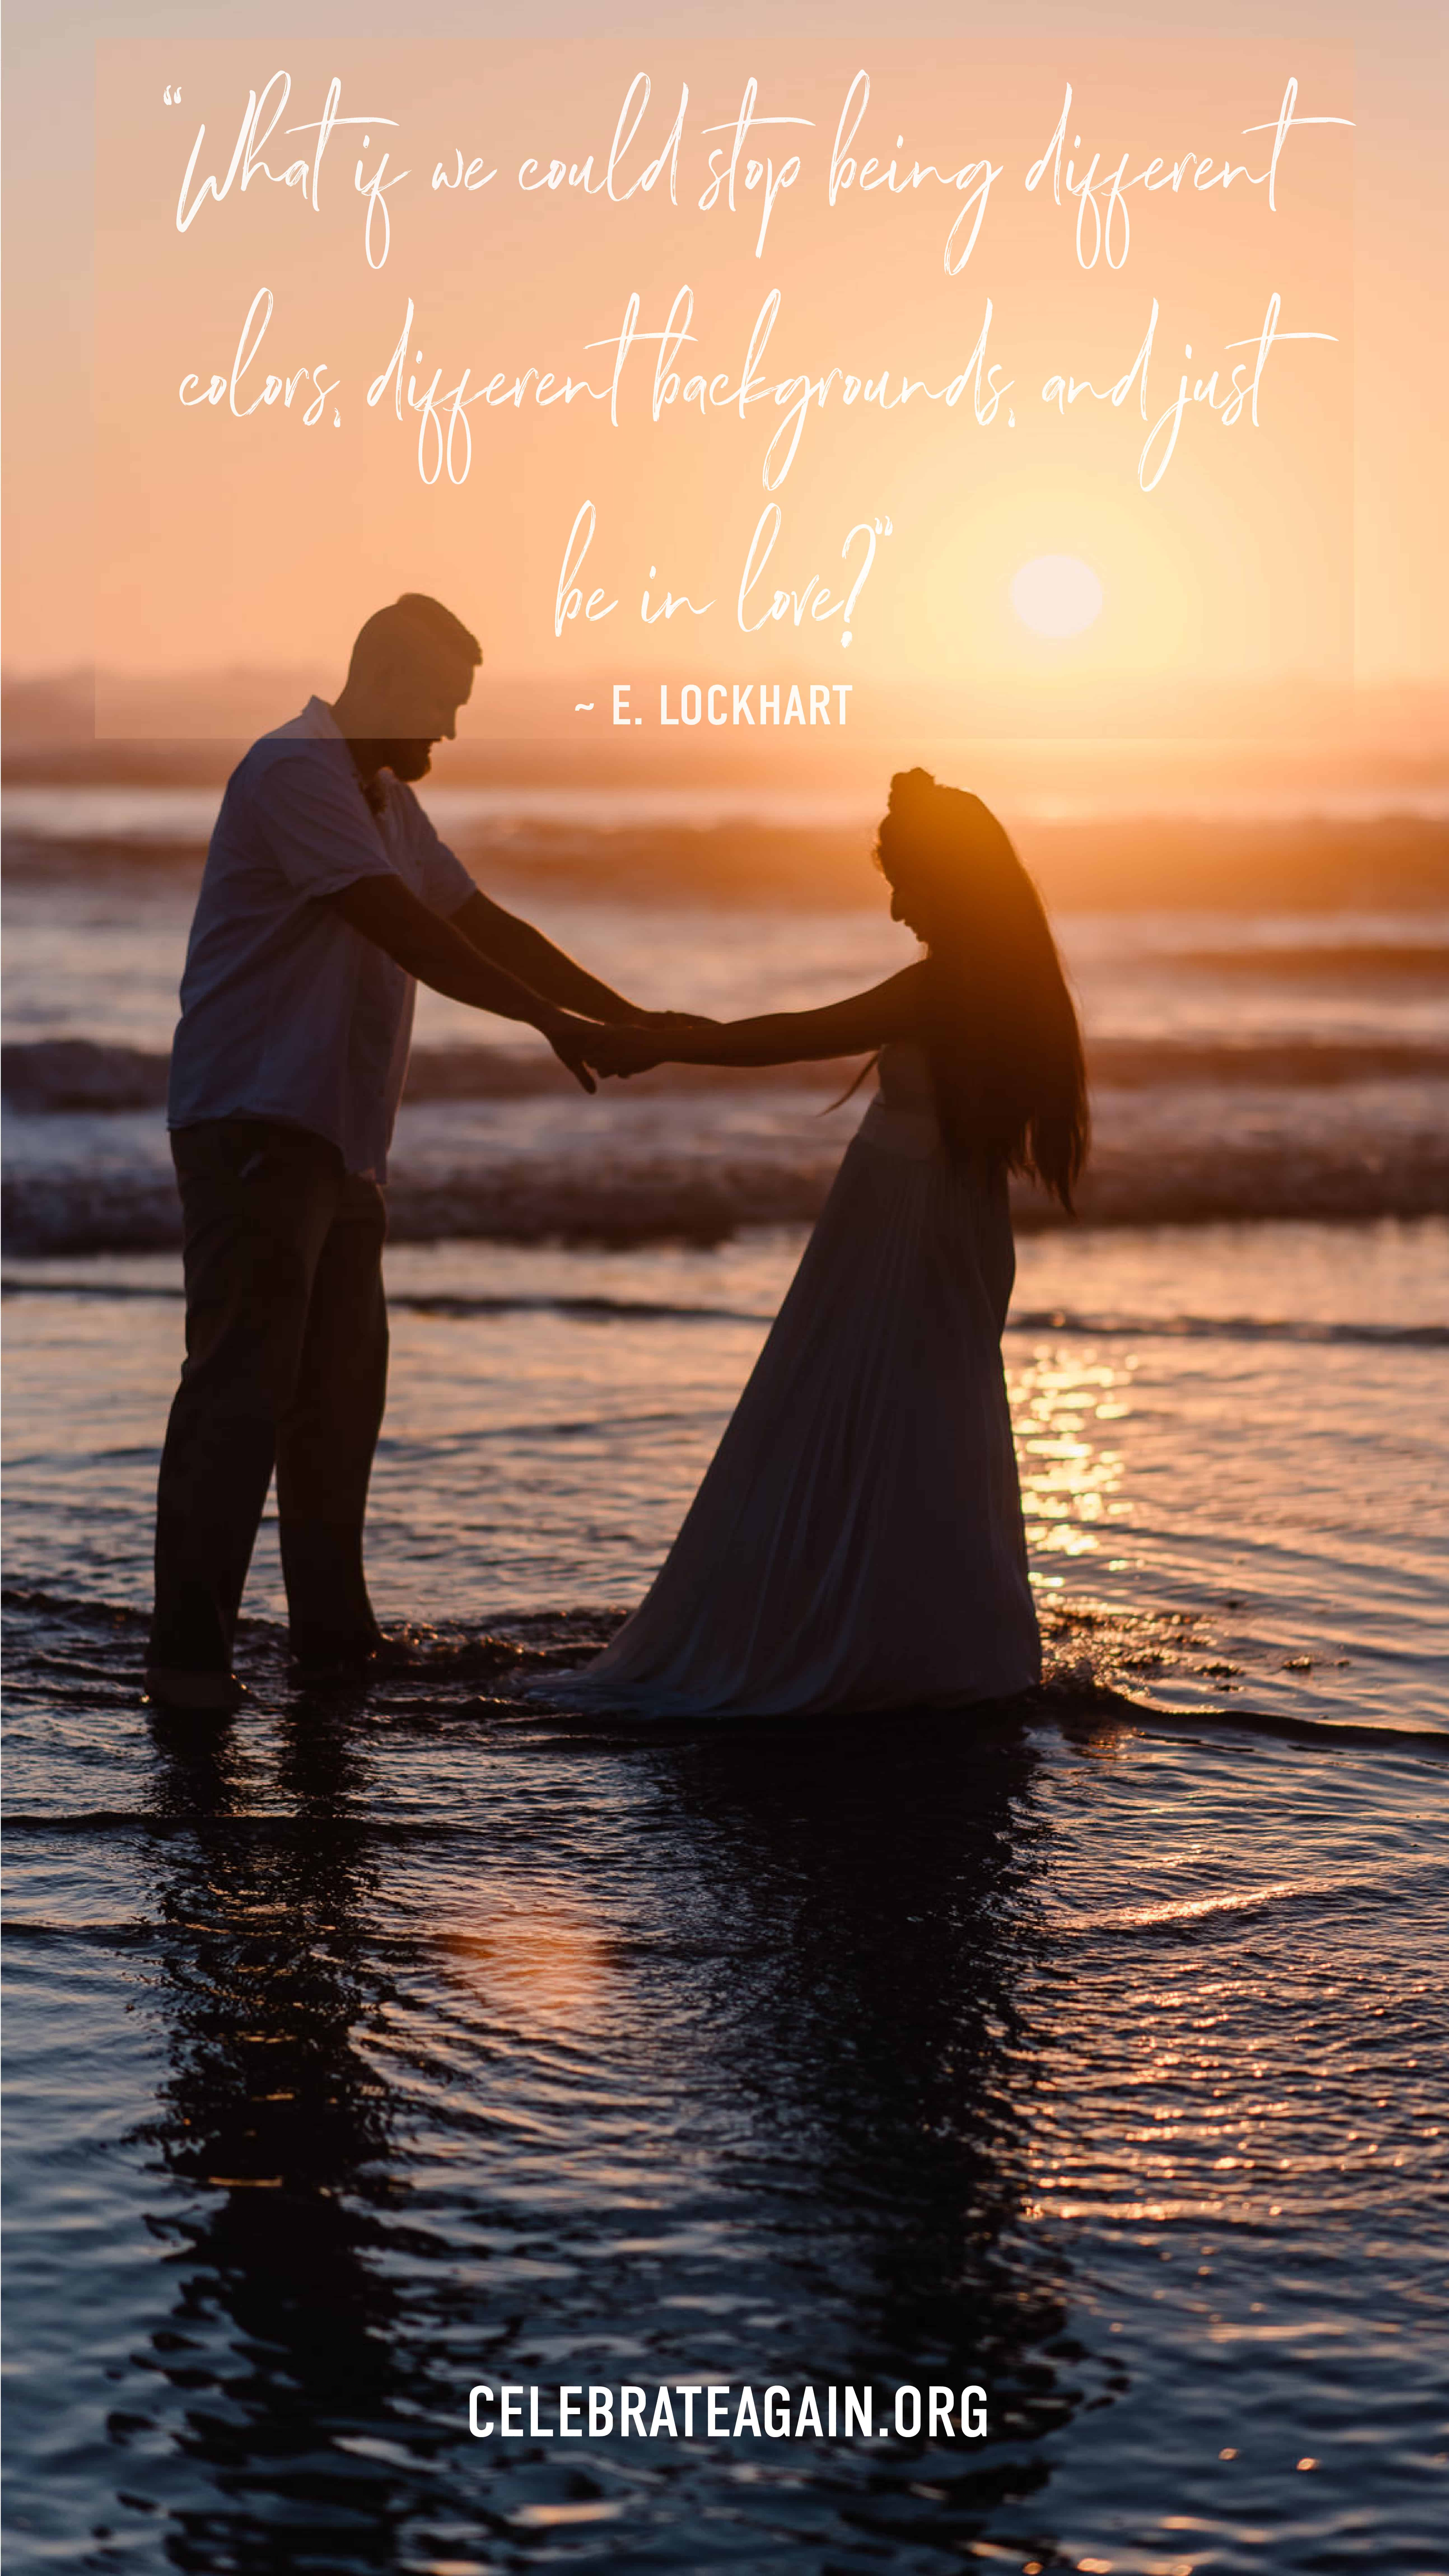 """unconditional romantic love quote for her """"What if we could stop being different colors, different backgrounds, and just be in love?"""" ― E. Lockhart, We Were Liars image of couple standing on a beach last sunset holding hands image by celebrateagain"""